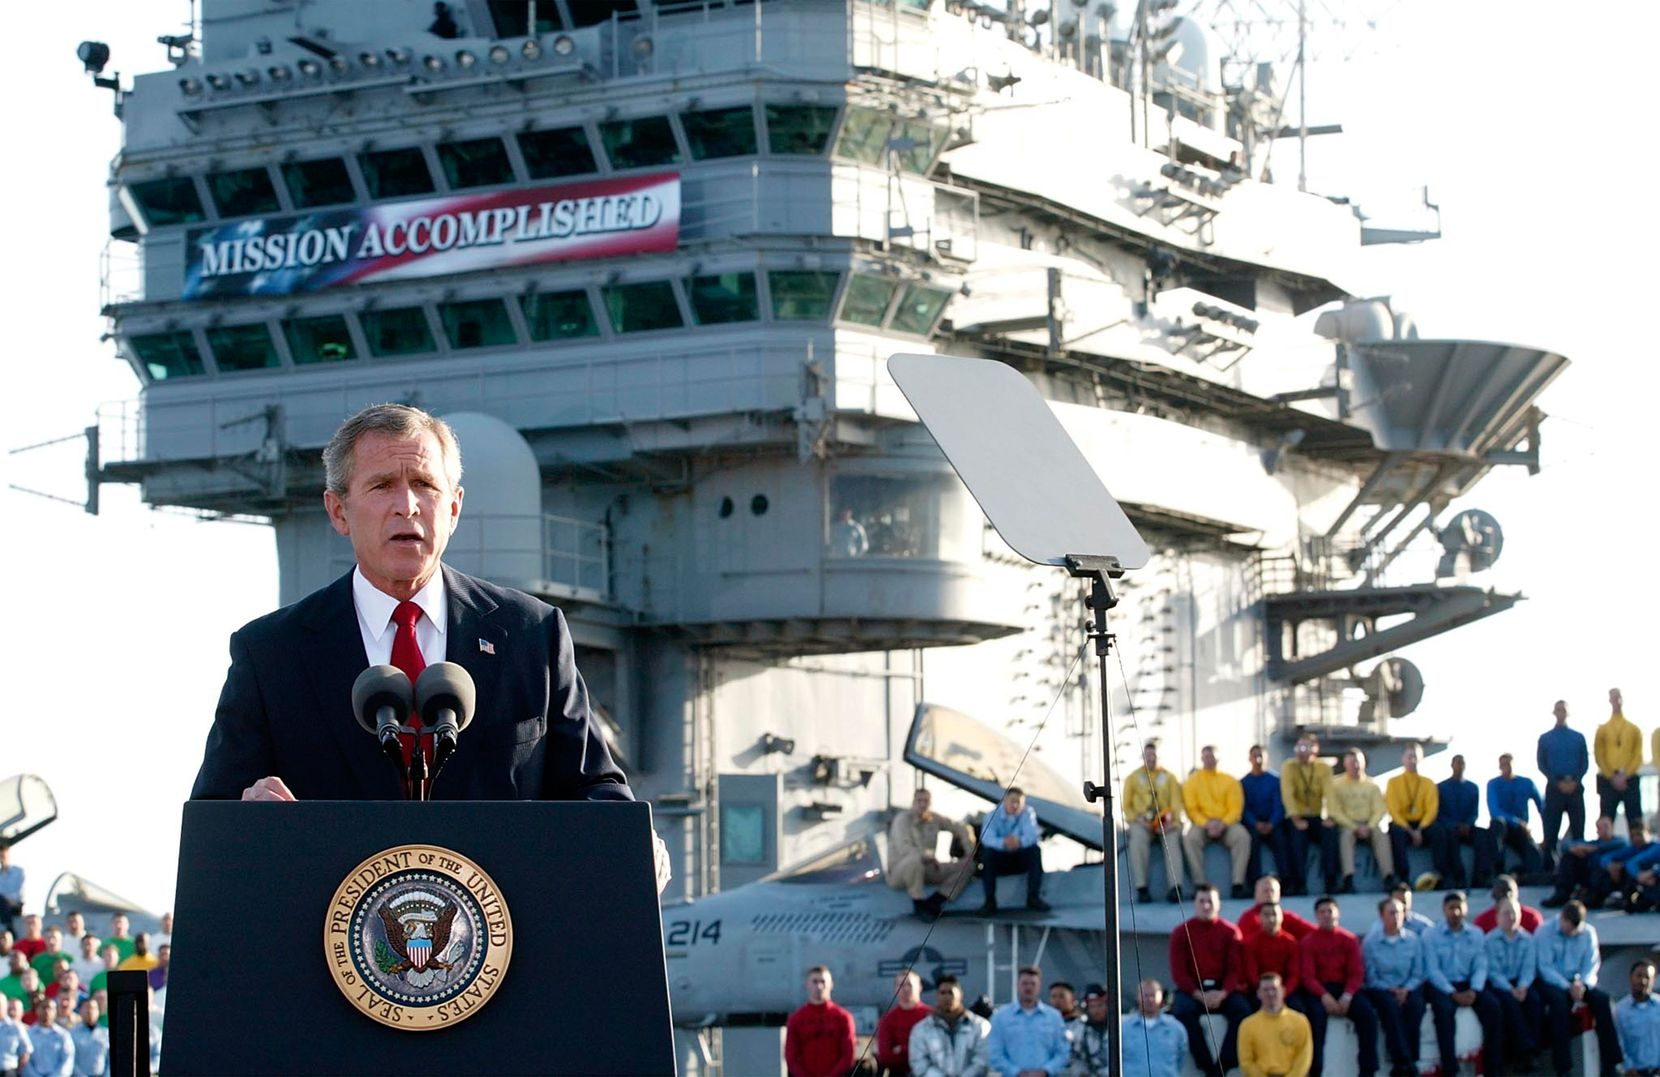 """President George W. Bush addresses the nation on May 1, 2003, from the nuclear aircraft carrier USS Abraham Lincoln as it sails for San Diego, Calif. A banner proclaiming """"Mission Accomplished"""" loomed in the background as he declared the end of major combat operations in Iraq, a claim belied by the years of hard fighting that followed."""